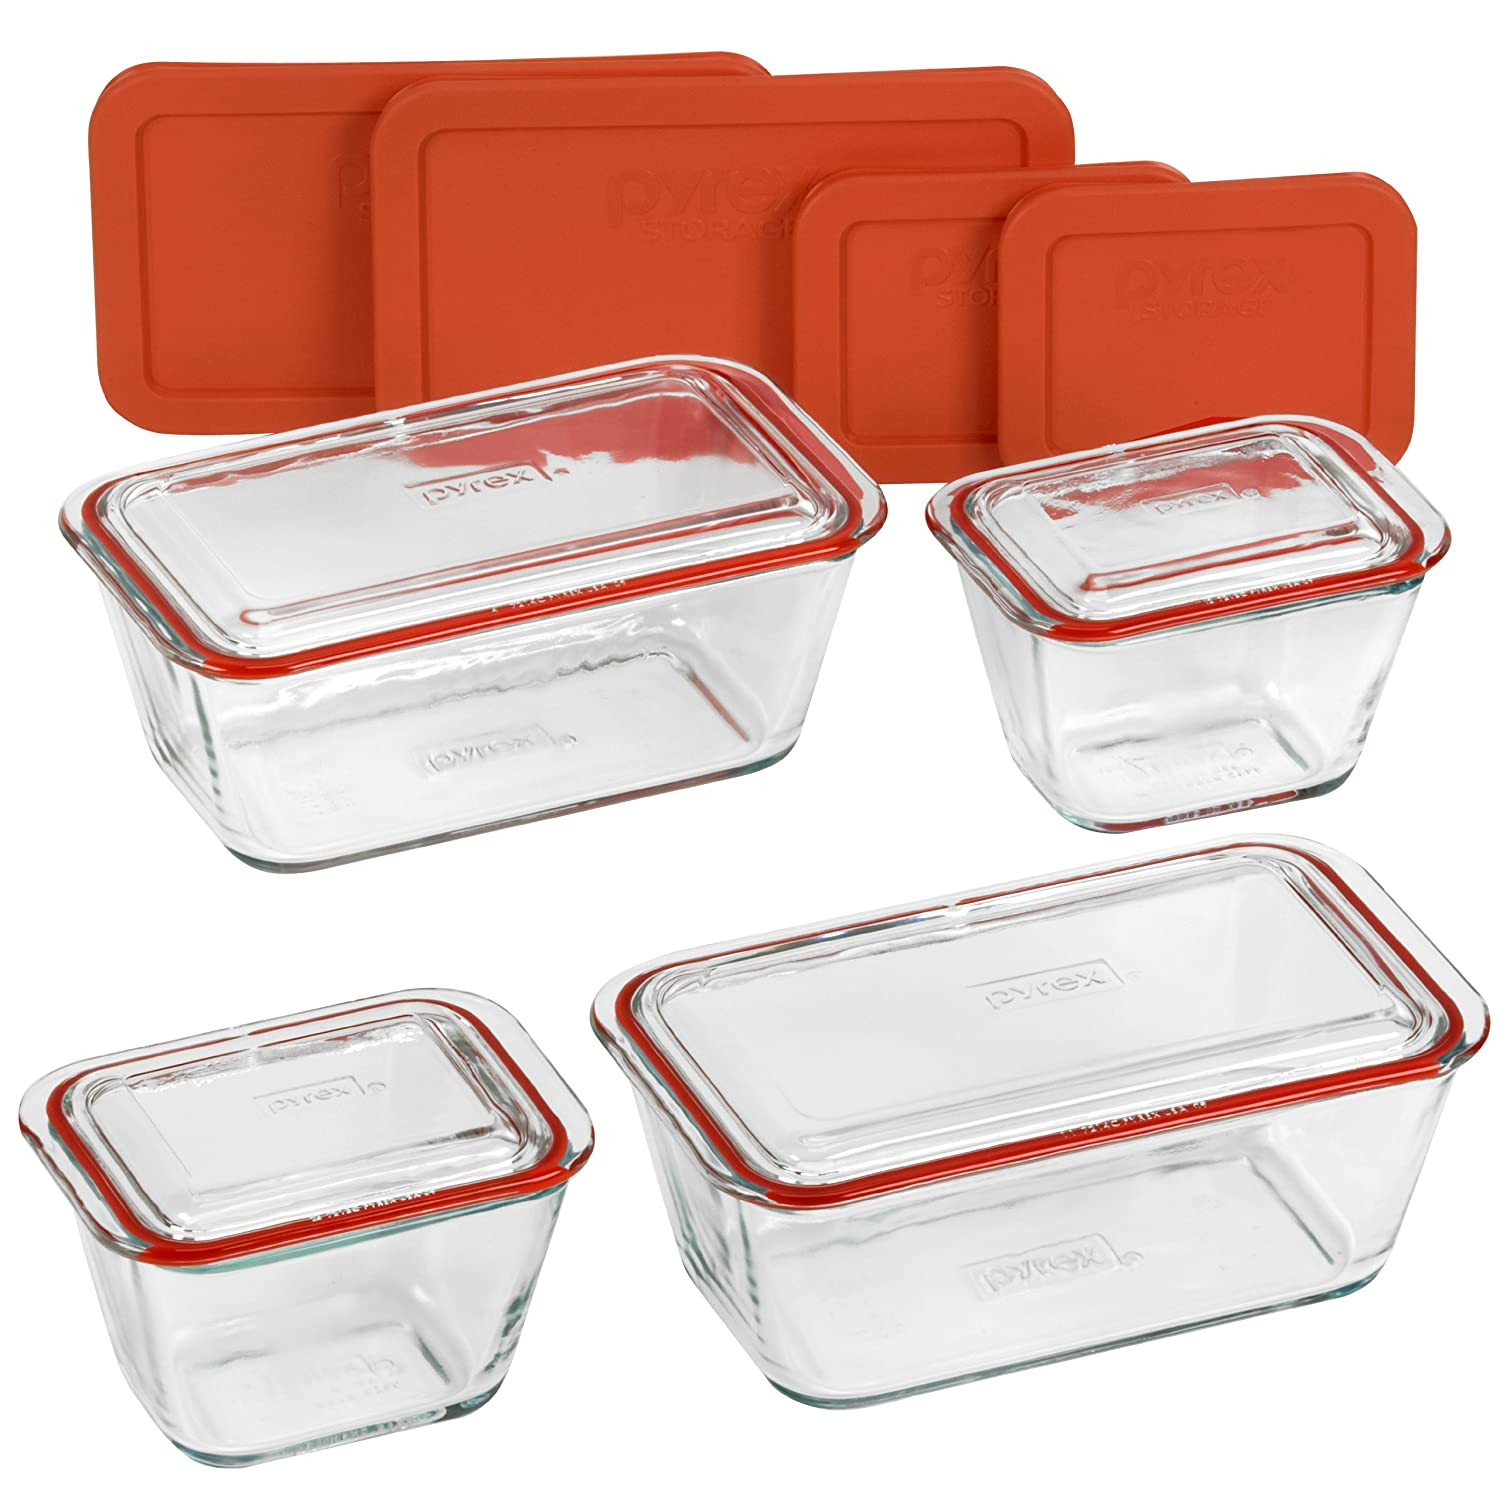 Amazon.com: Pyrex Glass Bake Serve, 12 Piece: Bake And Serve Sets: Kitchen  U0026 Dining